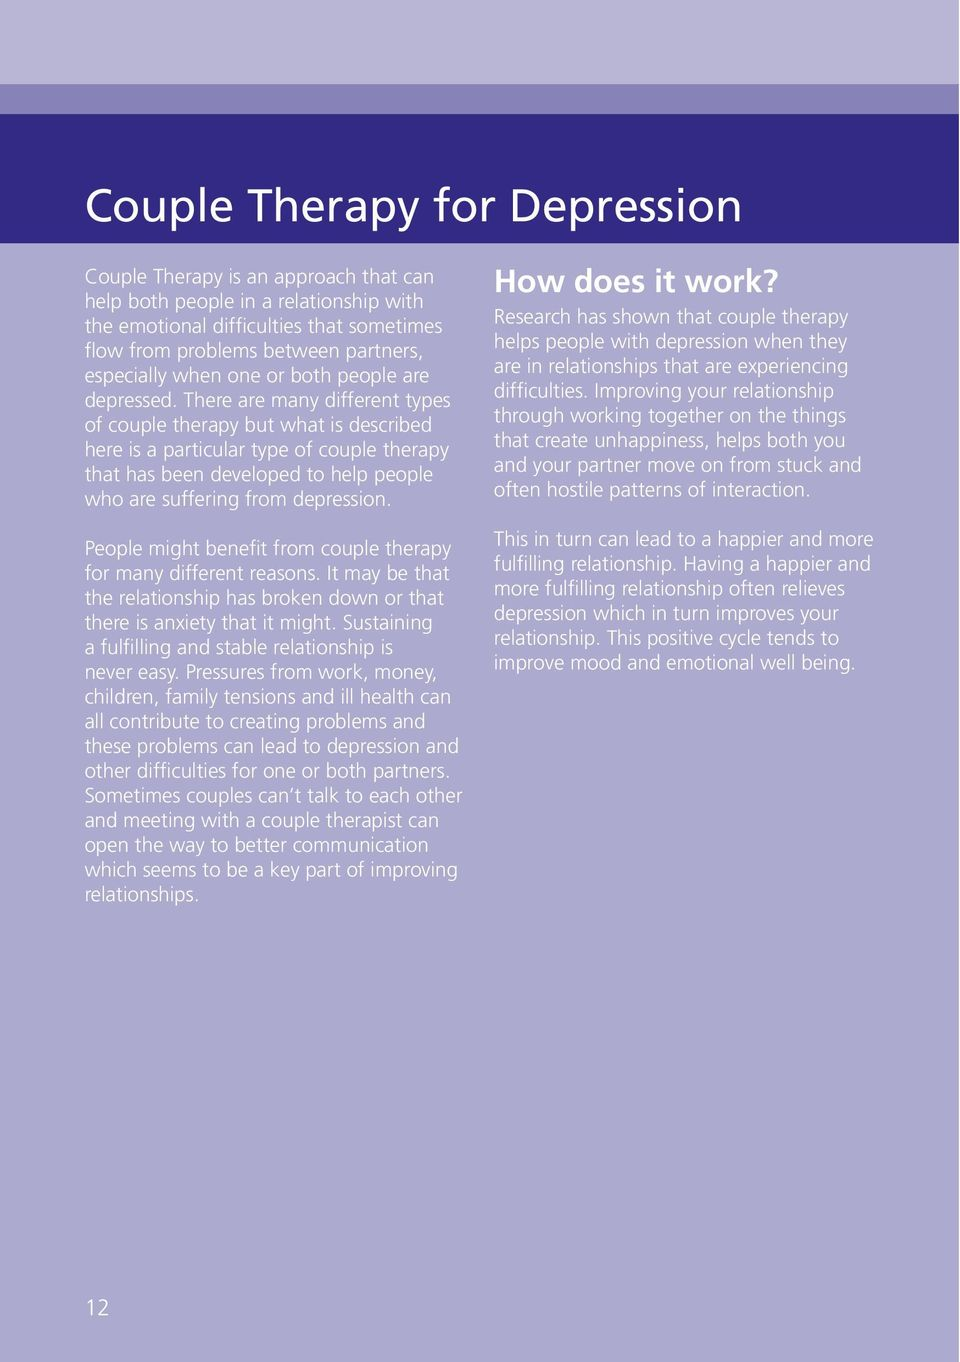 There are many different types of couple therapy but what is described here is a particular type of couple therapy that has been developed to help people who are suffering from depression.